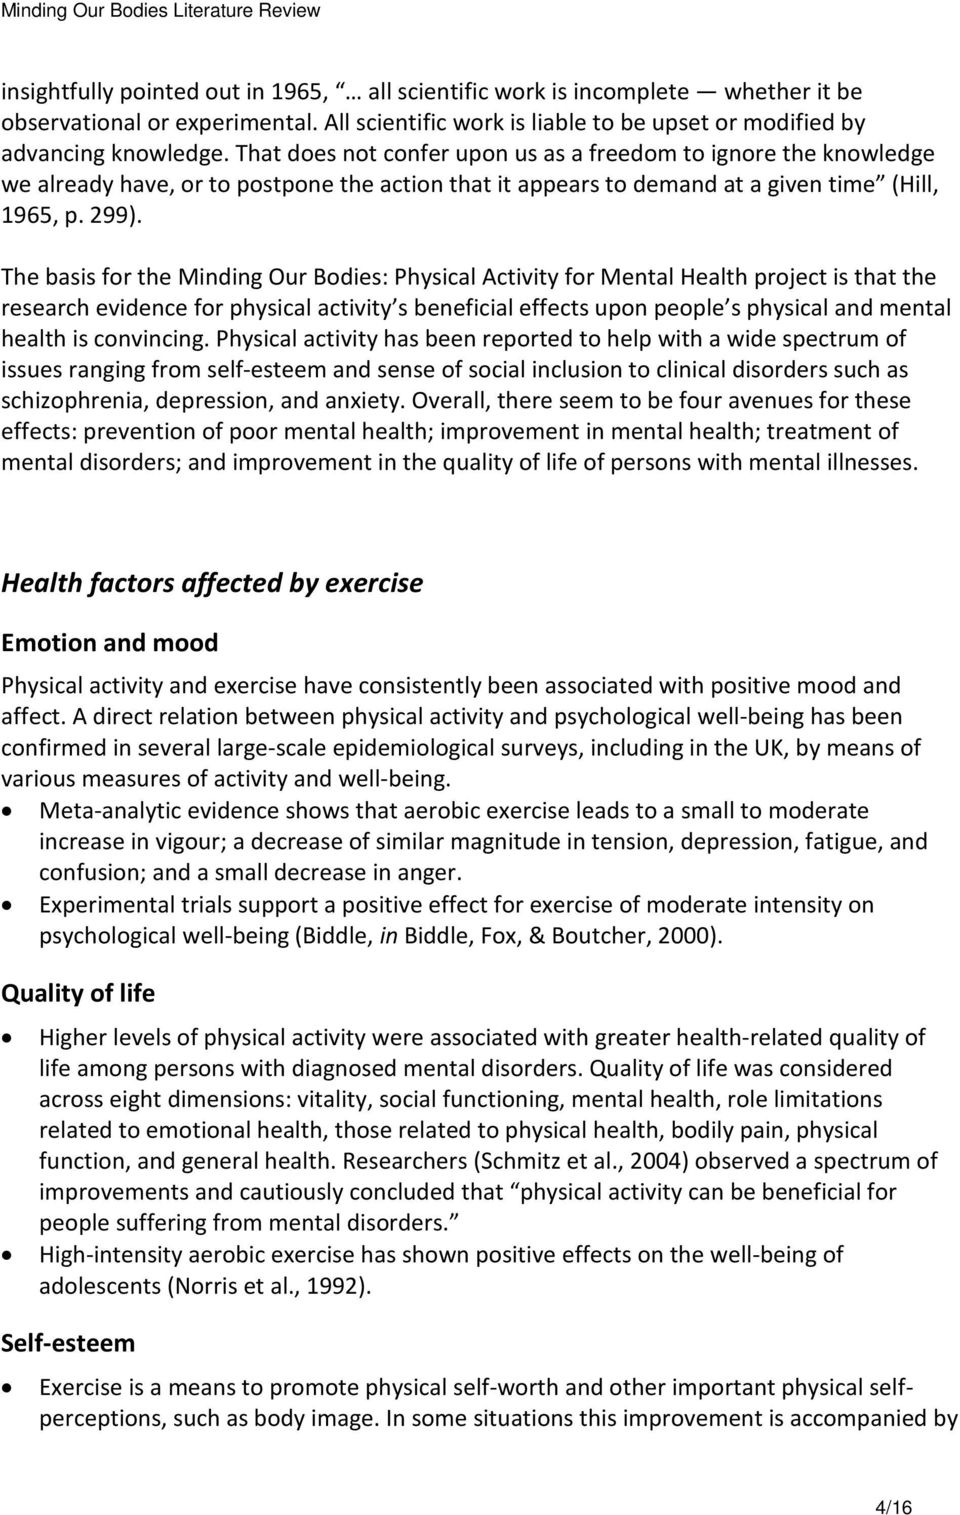 The basis for the Minding Our Bodies: Physical Activity for Mental Health project is that the research evidence for physical activity s beneficial effects upon people s physical and mental health is